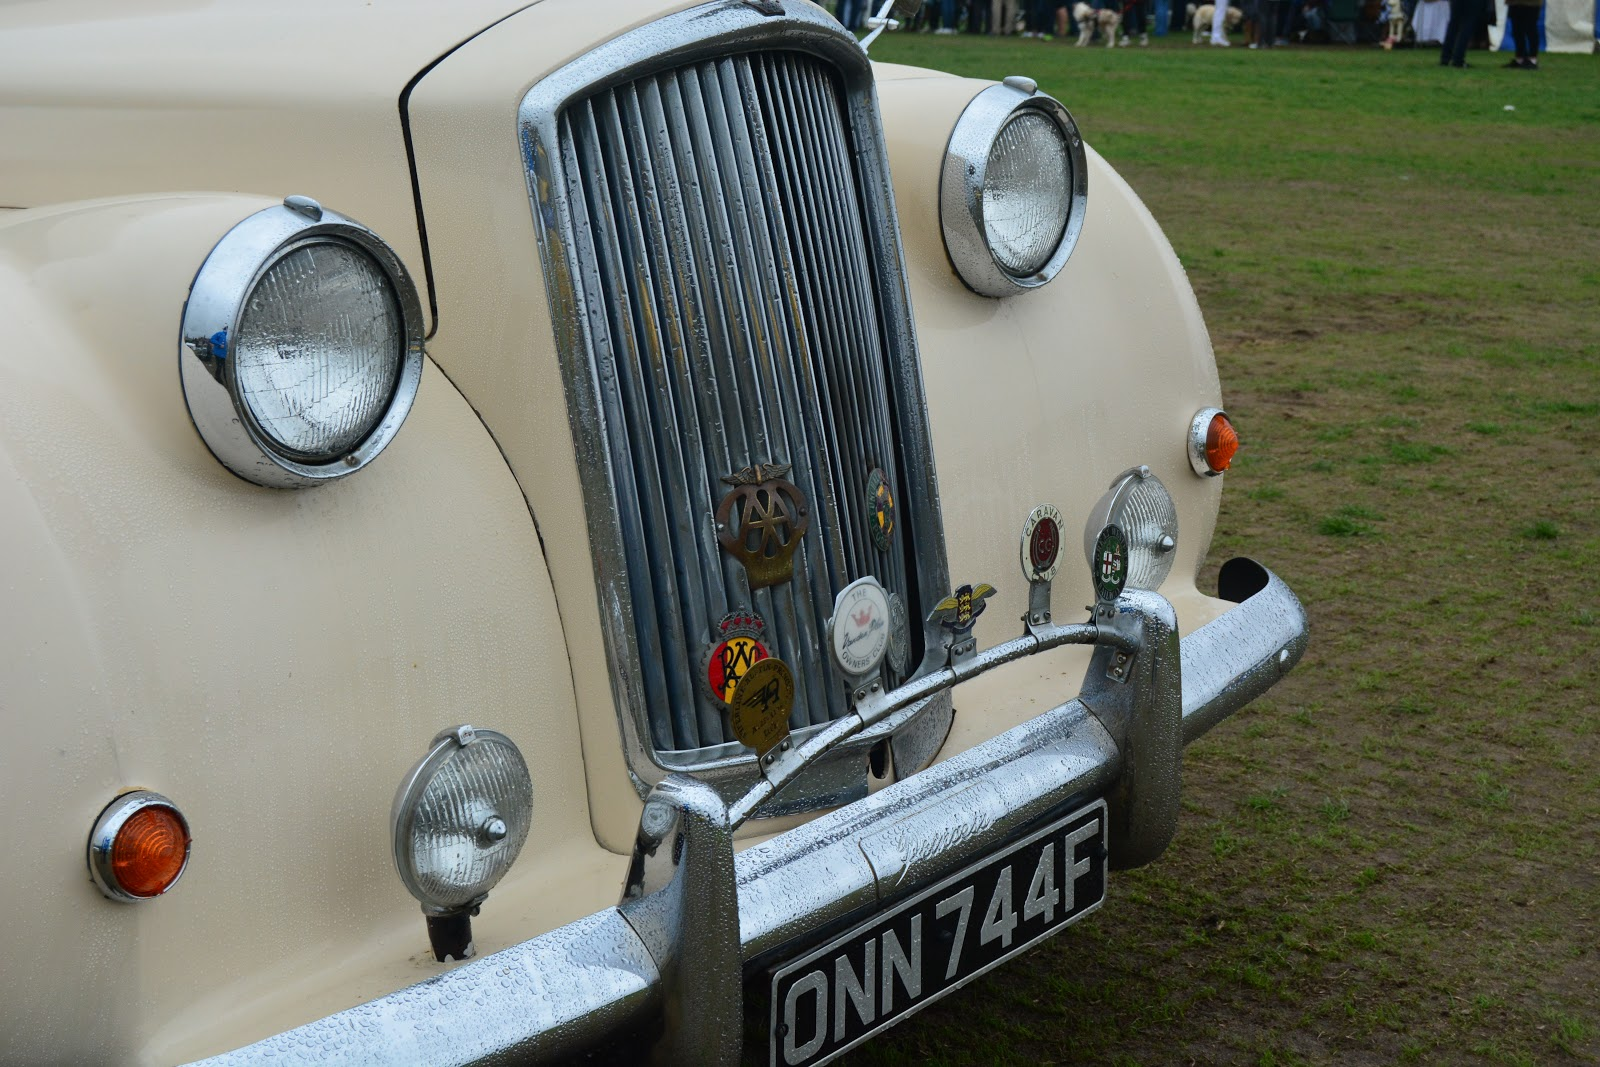 lytham, festival, lancashire, travel, uk, staycation, wartime, 40s, ww2, history, 40s weekend, cars, transport,